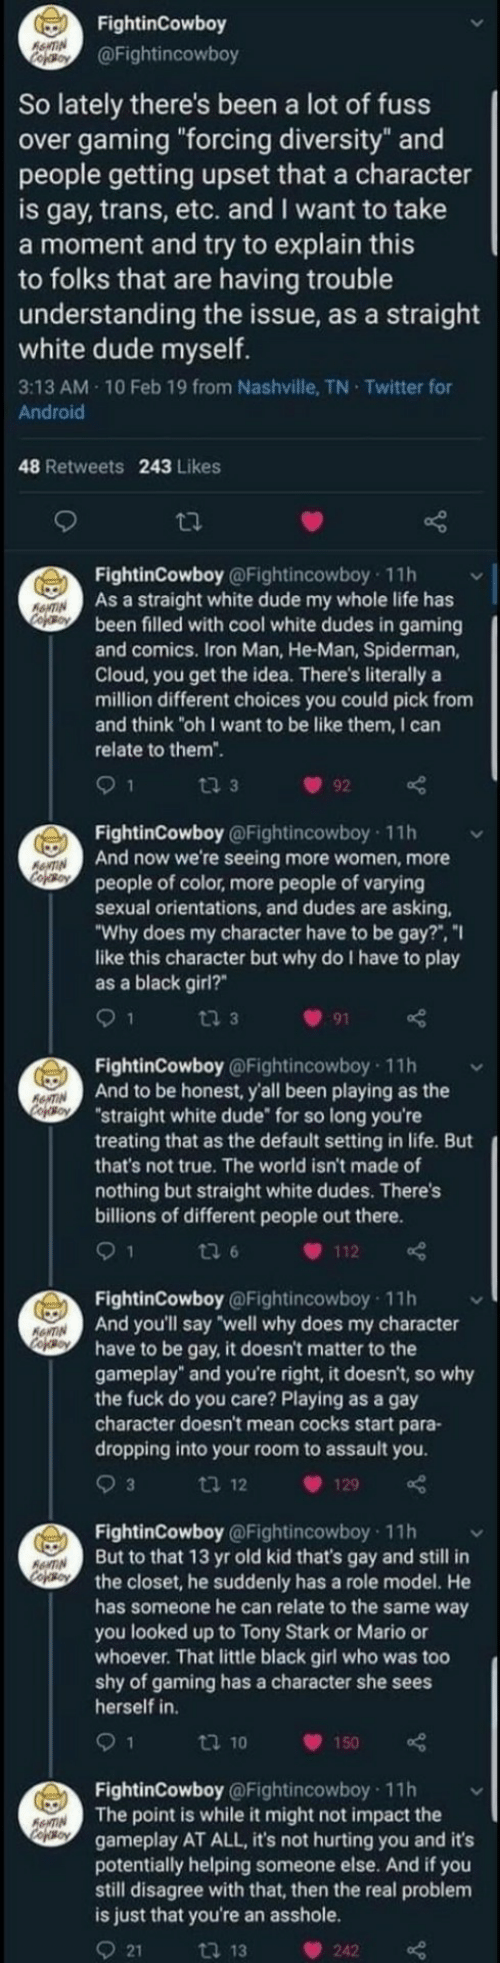 "Spiderman: FightinCowboy  RewTIN  Cefoy  @Fightincowboy  So lately there's been a lot of fuss  over gaming ""forcing diversity"" and  people getting upset that a character  is gay, trans, etc. and I want to take  a moment and try to explain this  to folks that are having trouble  understanding the issue, as a straight  white dude myself.  3:13 AM 10 Feb 19 from Nashville, TN Twitter for  Android  48 Retweets 243 Likes  FightinCowboy @Fightincowboy 11h  As a straight white dude my whole life has  been filled with cool white dudes in gaming  and comics. Iron Man, He-Man, Spiderman,  Cloud, you get the idea. There's literally a  million different choices you could pick from  and think ""oh I want to be like them, I can  ANTIN  Cooy  relate to them"".  ti 3  92  FightinCowboy @Fightincowboy 11h  And now we're seeing more women, more  people of color, more people of varying  sexual orientations, and dudes are asking  ""Why does my character have to be gay?"", ""I  like this character but why do I have to play  as a black girl?  ANTIN  CofoBoy  9 1  ti 3  91  FightinCowboy @Fightincowboy 11h  And to be honest, y'all been playing as the  ""straight white dude for so long you're  treating that as the default setting in life. But  that's not true. The world isn't made of  RNTIN  CopOBoY  nothing but straight white dudes. There's  billions of different people out there.  1  ti 6  112  FightinCowboy @Fightincowboy 11h  And you'll say well why does my character  have to be gay, it doesn't matter to the  gameplay"" and you're right, it doesn't, so why  the fuck do you care? Playing as a gay  character doesn't mean cocks start para-  dropping into your room to assault you  ANTIN  cofeo  3  ti 12  129  FightinCowboy @Fightincowboy 11h  But to that 13 yr old kid that's gay and still in  the closet, he suddenly has a role model. He  has someone he can relate to the same way  you looked up to Tony Stark or Mario or  whoever. That little black girl who was too  shy of gaming has a character she sees  herself in  AANTIN  Cojso  9 1  t 10  150  FightinCowboy @Fightincowboy 11h  The point is while it might not impact the  gameplay AT ALL, it's not hurting you and it's  potentially helping someone else. And if you  still disagree with that, then the real problem  is just that you're an asshole.  AeNTIN  Cofeso  21  ti 13  242"